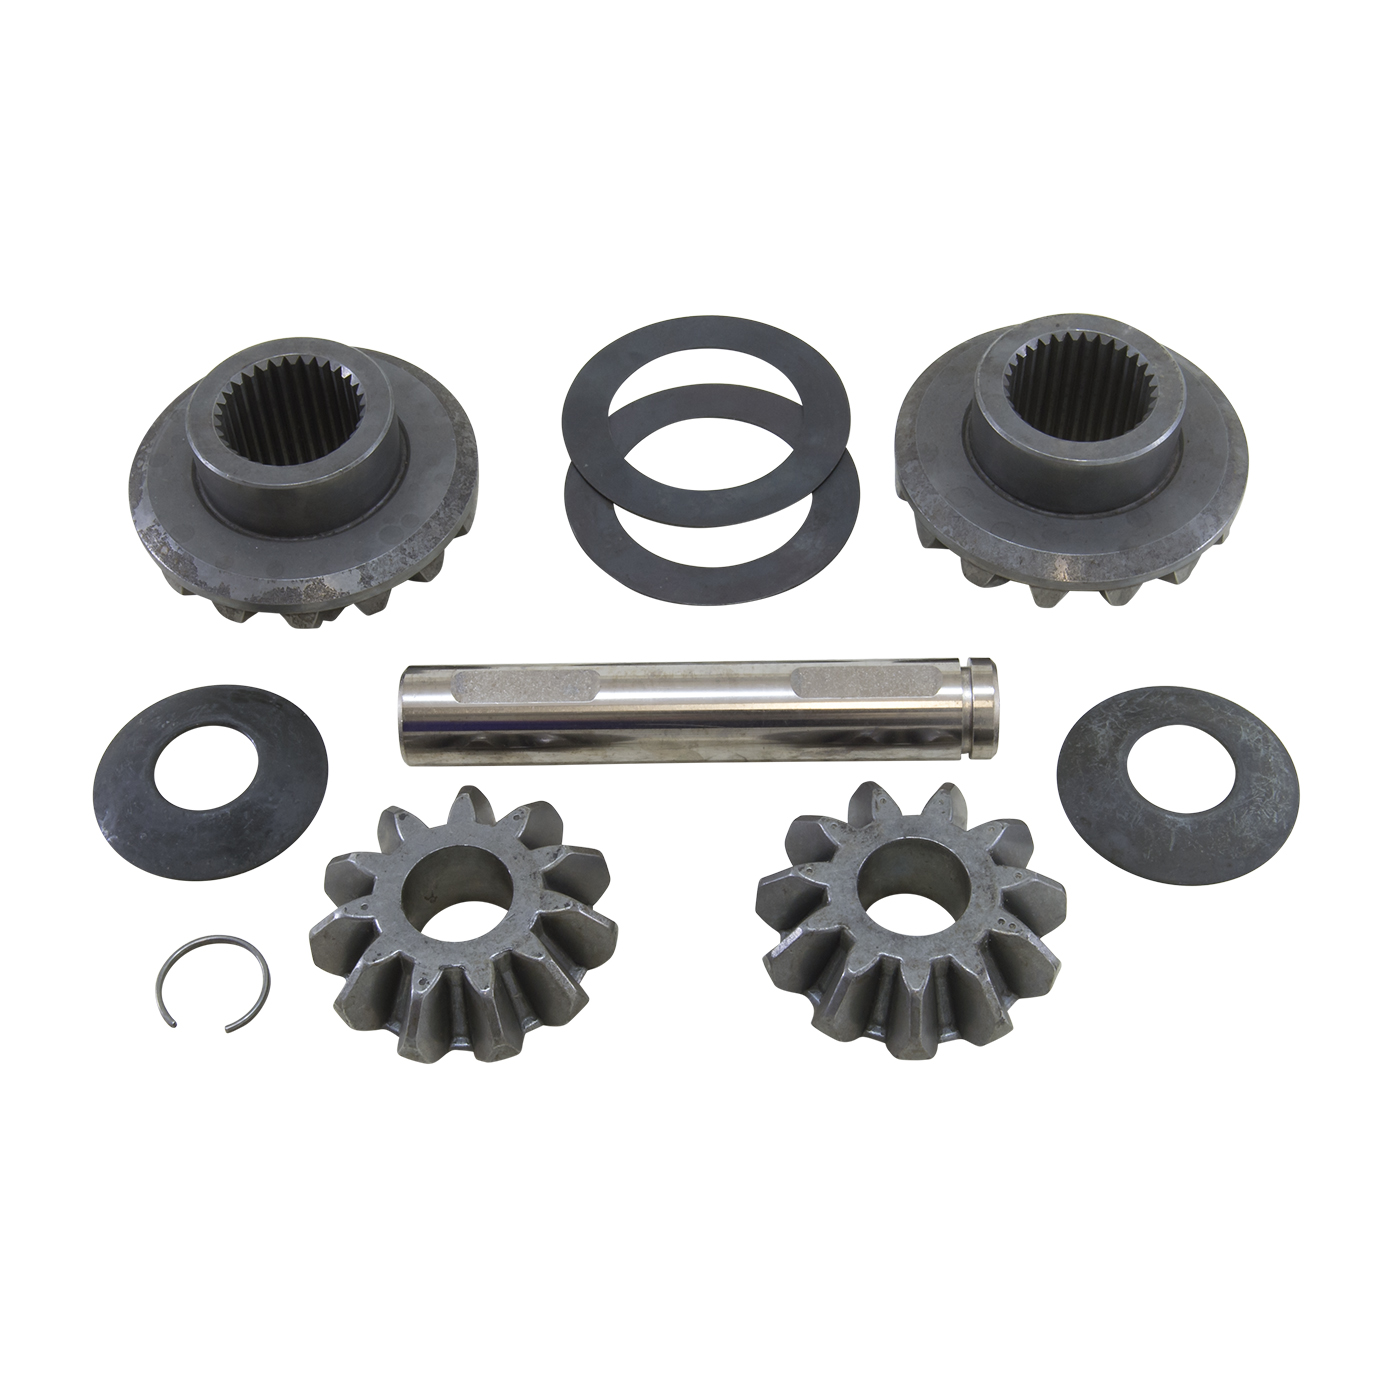 YPKC10.5-S-30 - Yukon standard open spider gear kit for 10.5